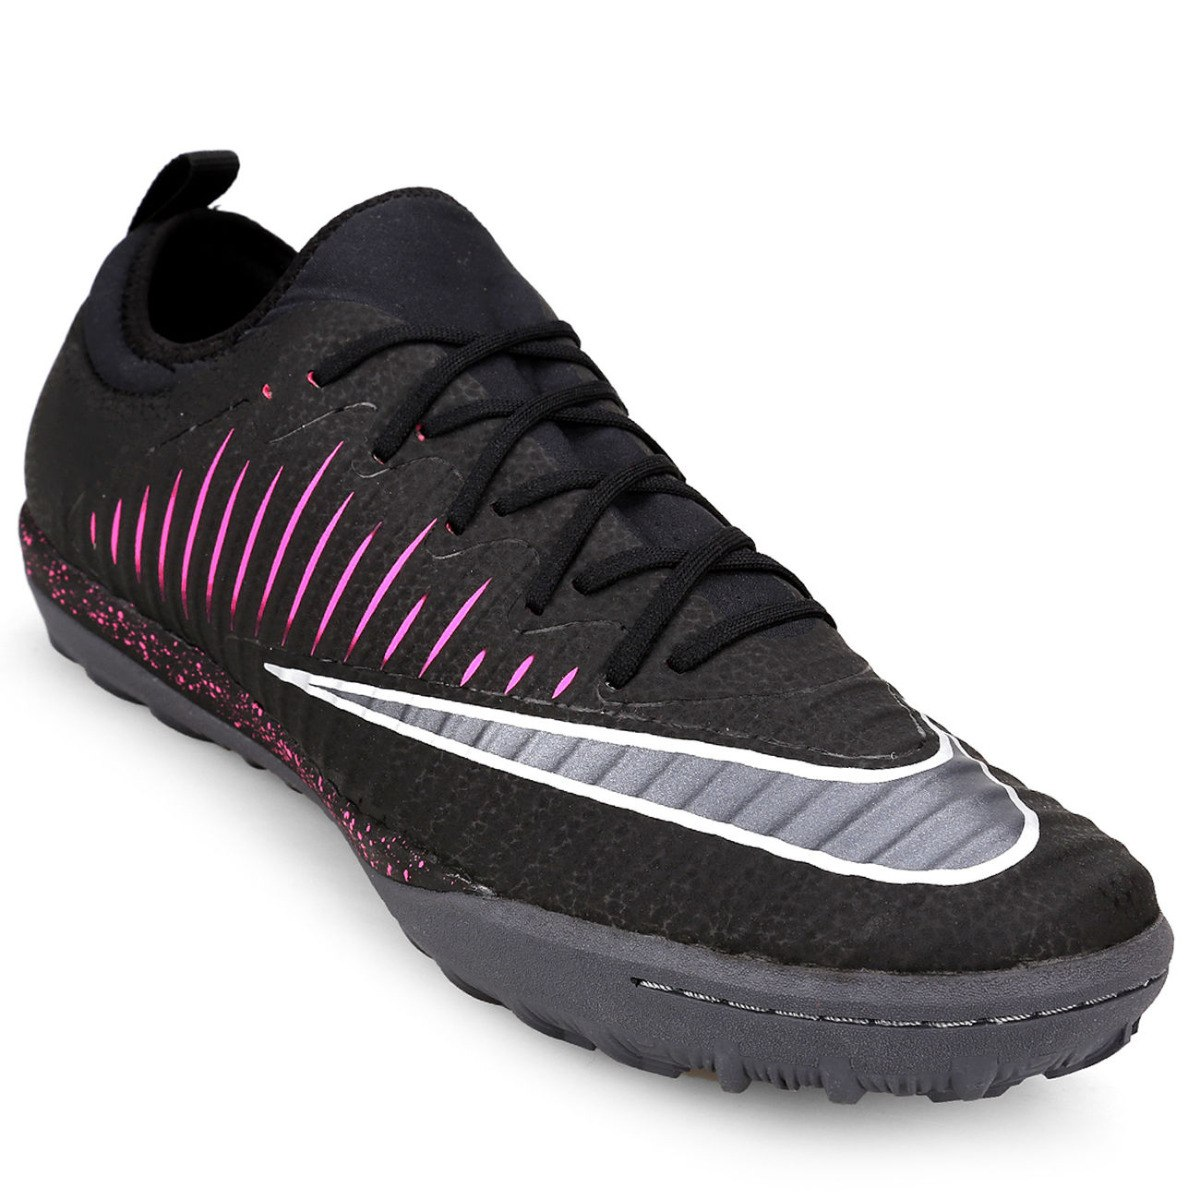 440e9b8749bf6 where to buy nike mercurial finale ii tf negro rosado b85d4 f8c3d